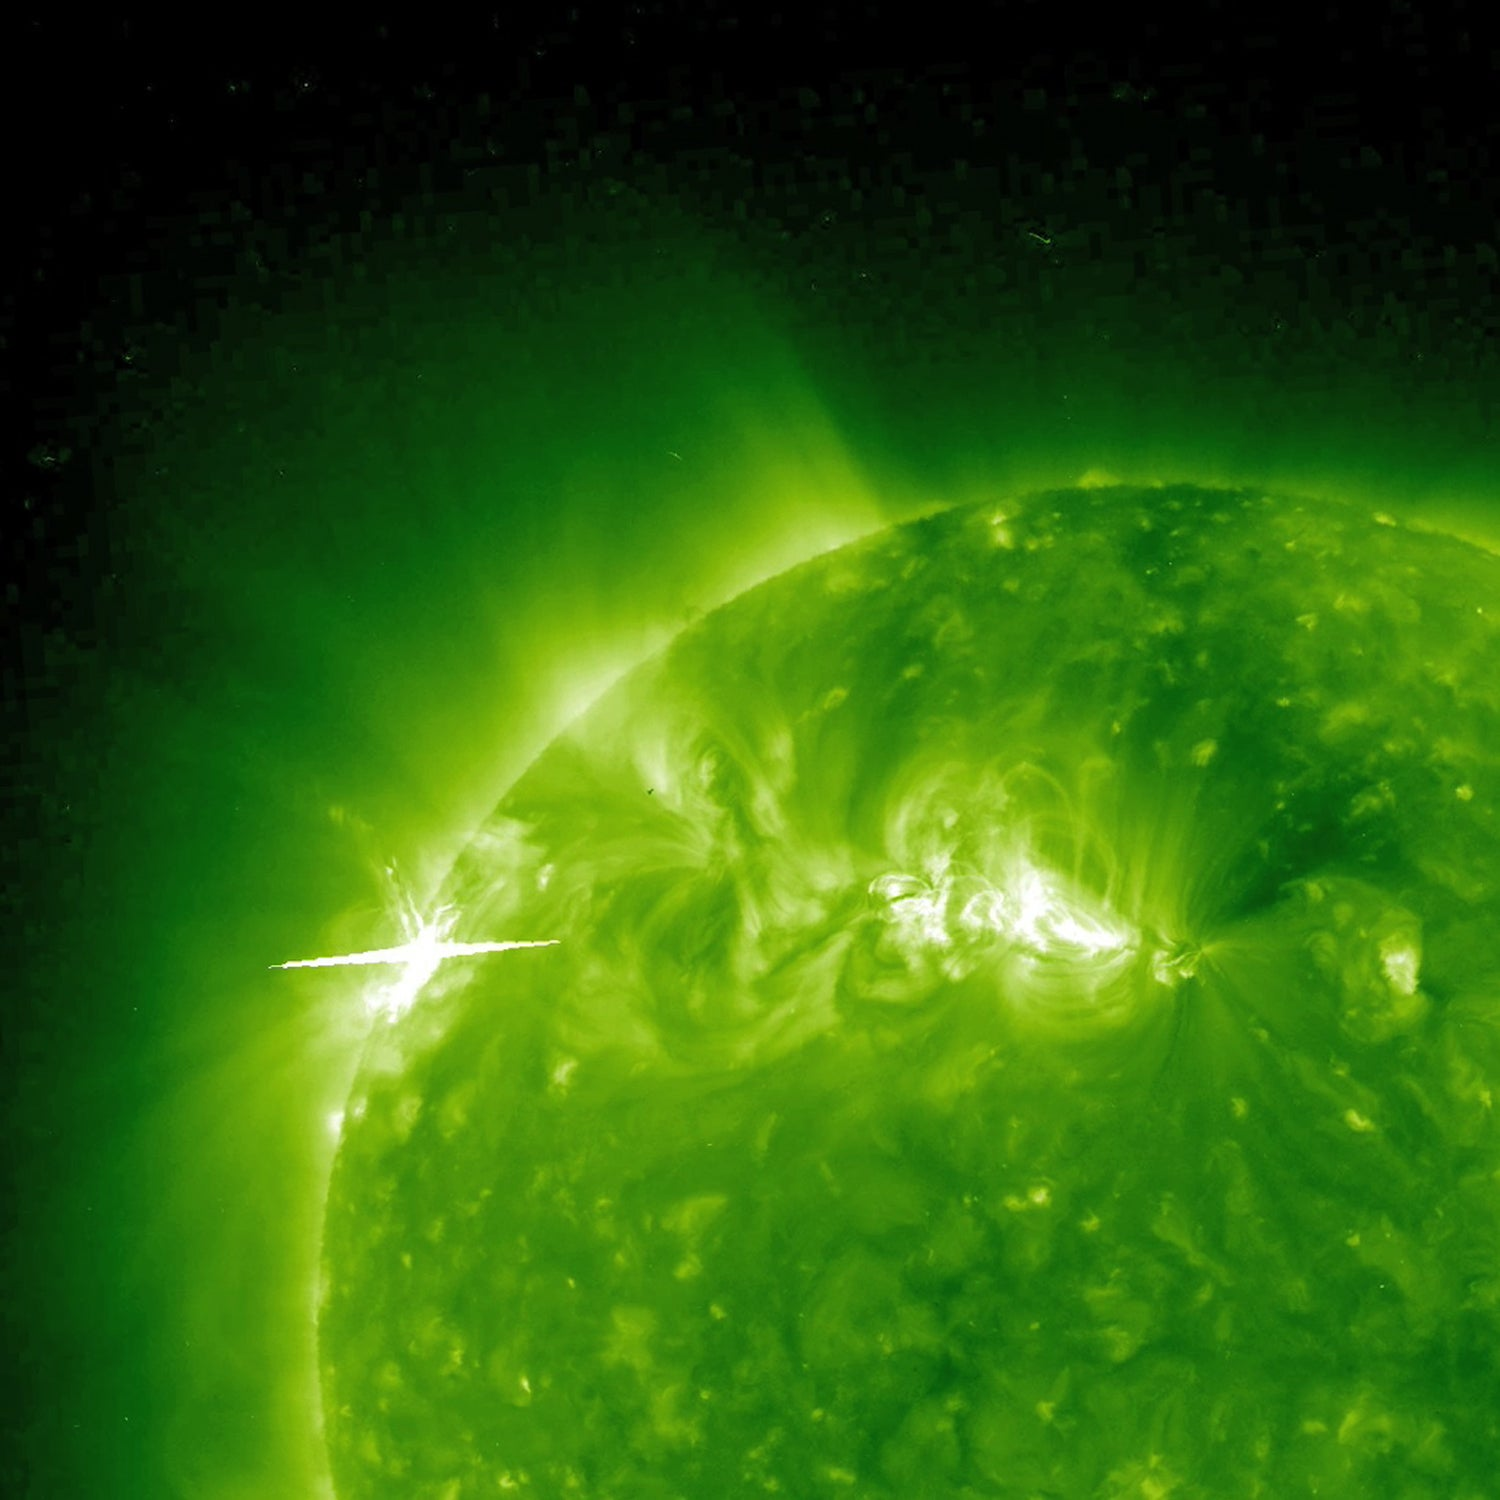 Space Weather Is Worsening; Could Mean Risk for Astronauts and Delay Manned Mars Missions